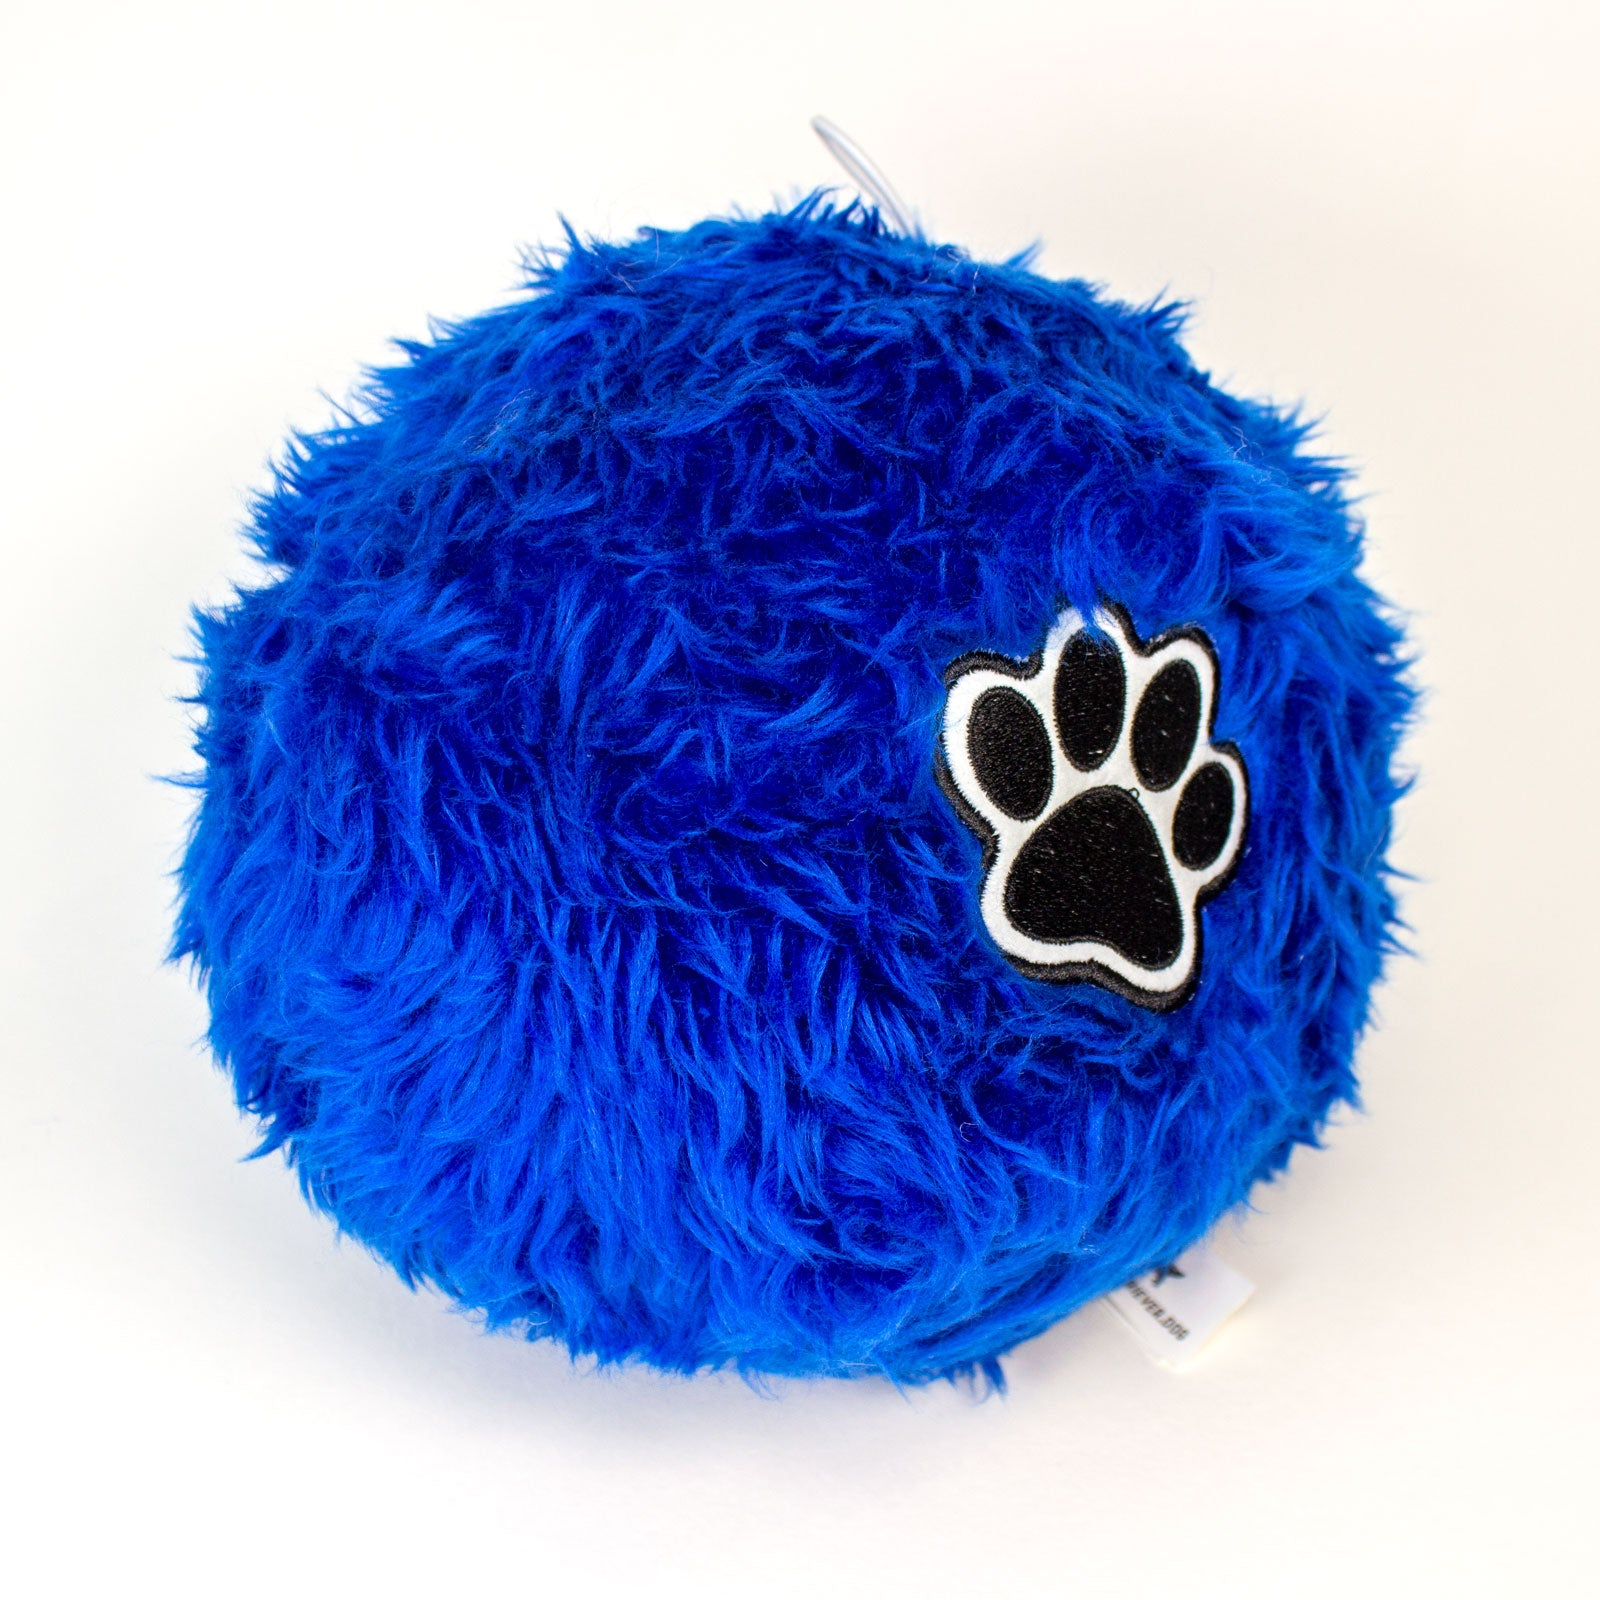 Soft Fluffy Ball For Weimaraner Dog - Large Size